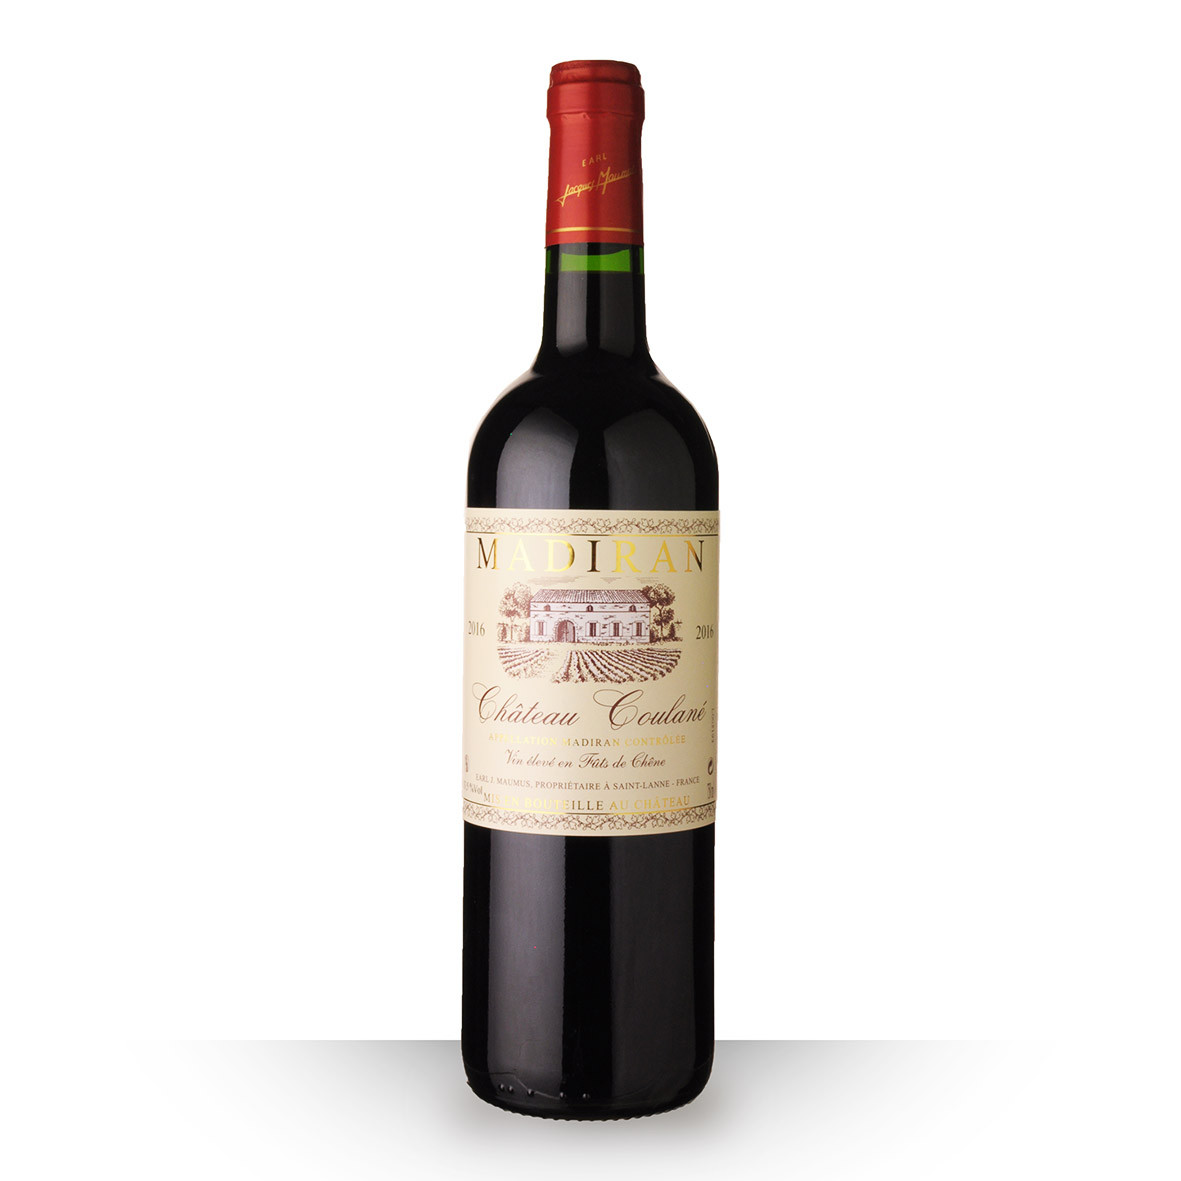 Château Coulané Madiran Rouge 2016 75cl www.odyssee-vins.com